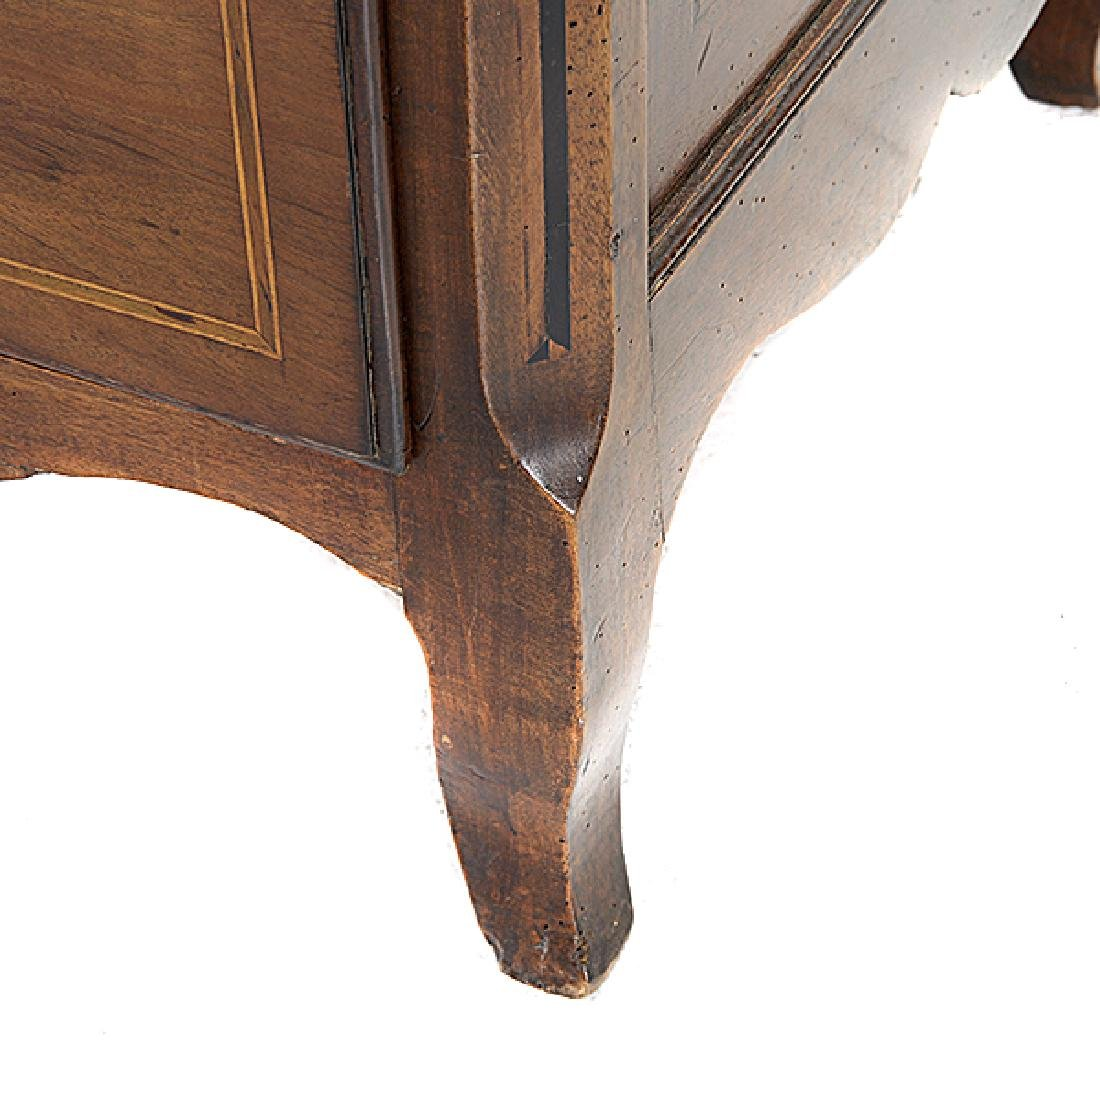 French Provincial Walnut Inlaid Commode - 4